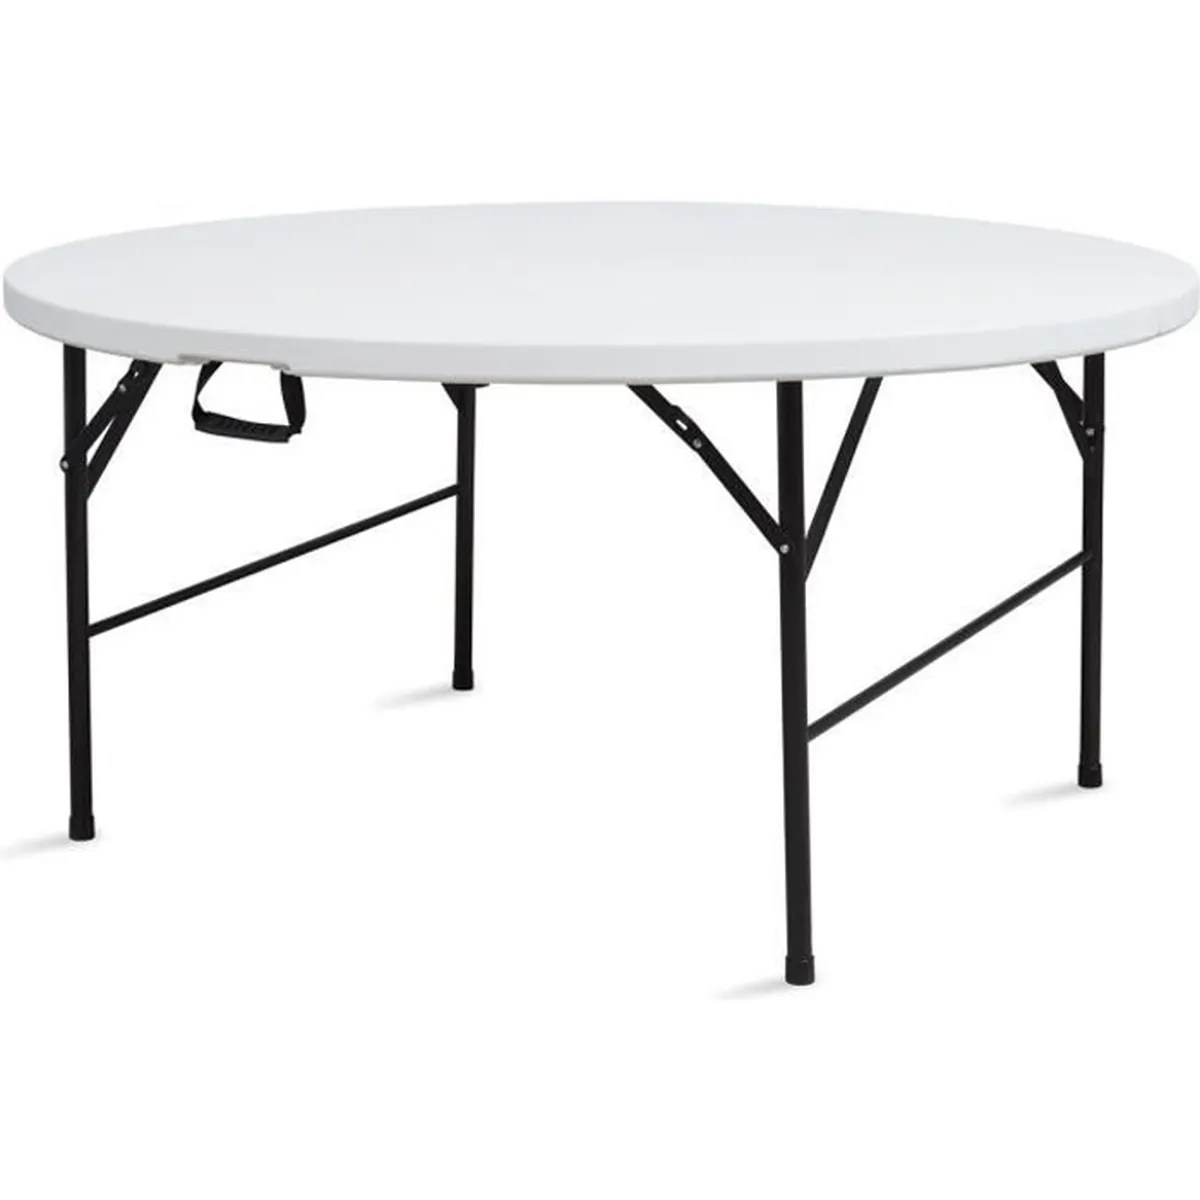 Table Pliante Exterieur Table Pliante Ronde 150 Cm 8 Personnes Achat Vente Table De